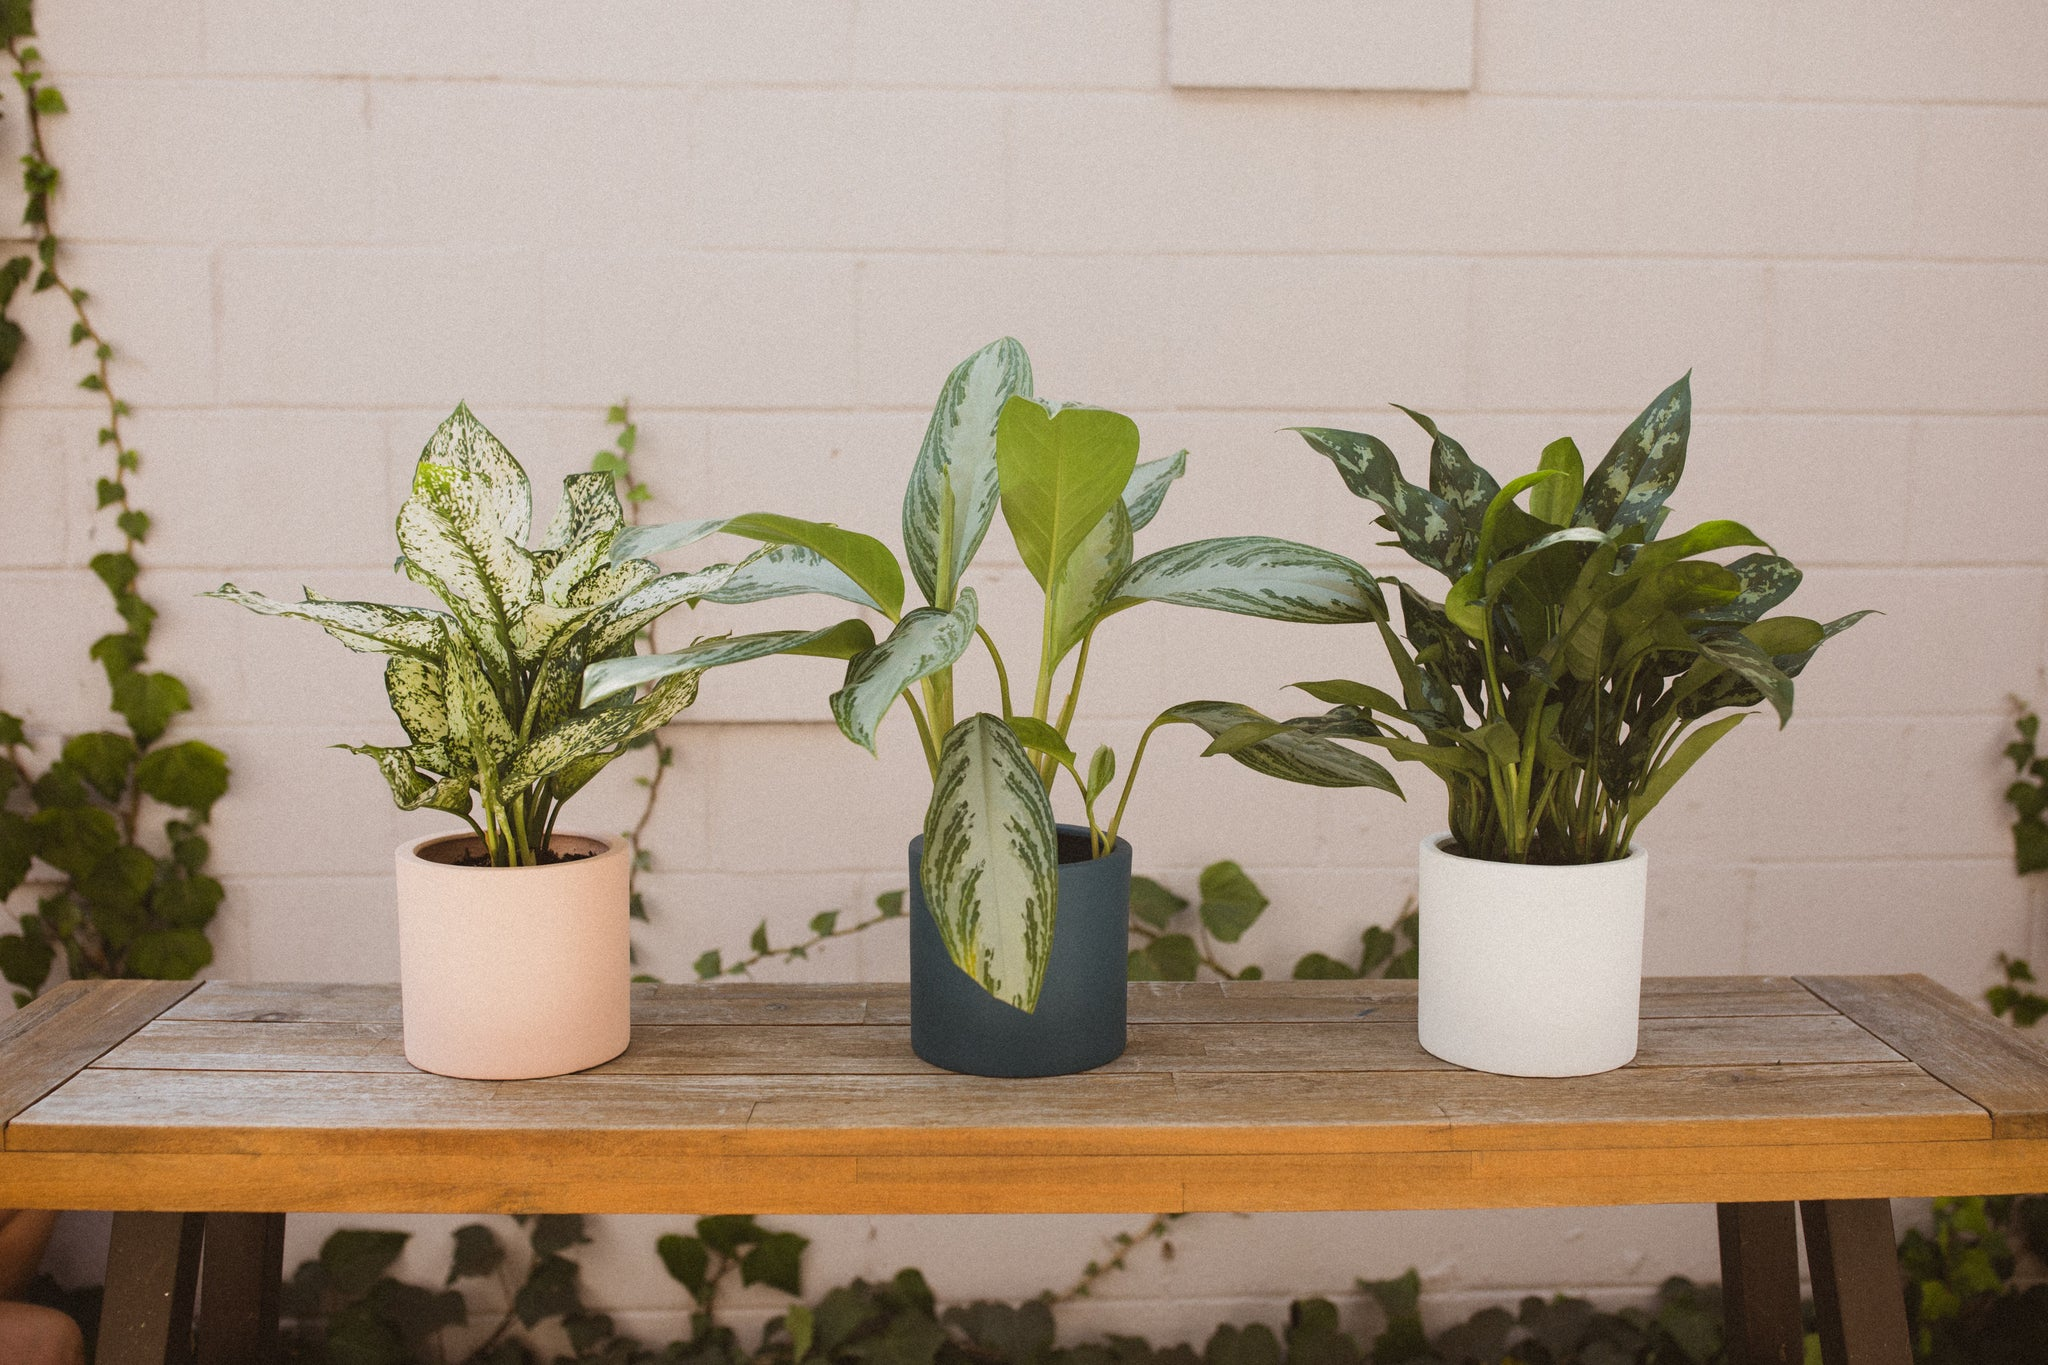 Best Plants for Plant Newbs